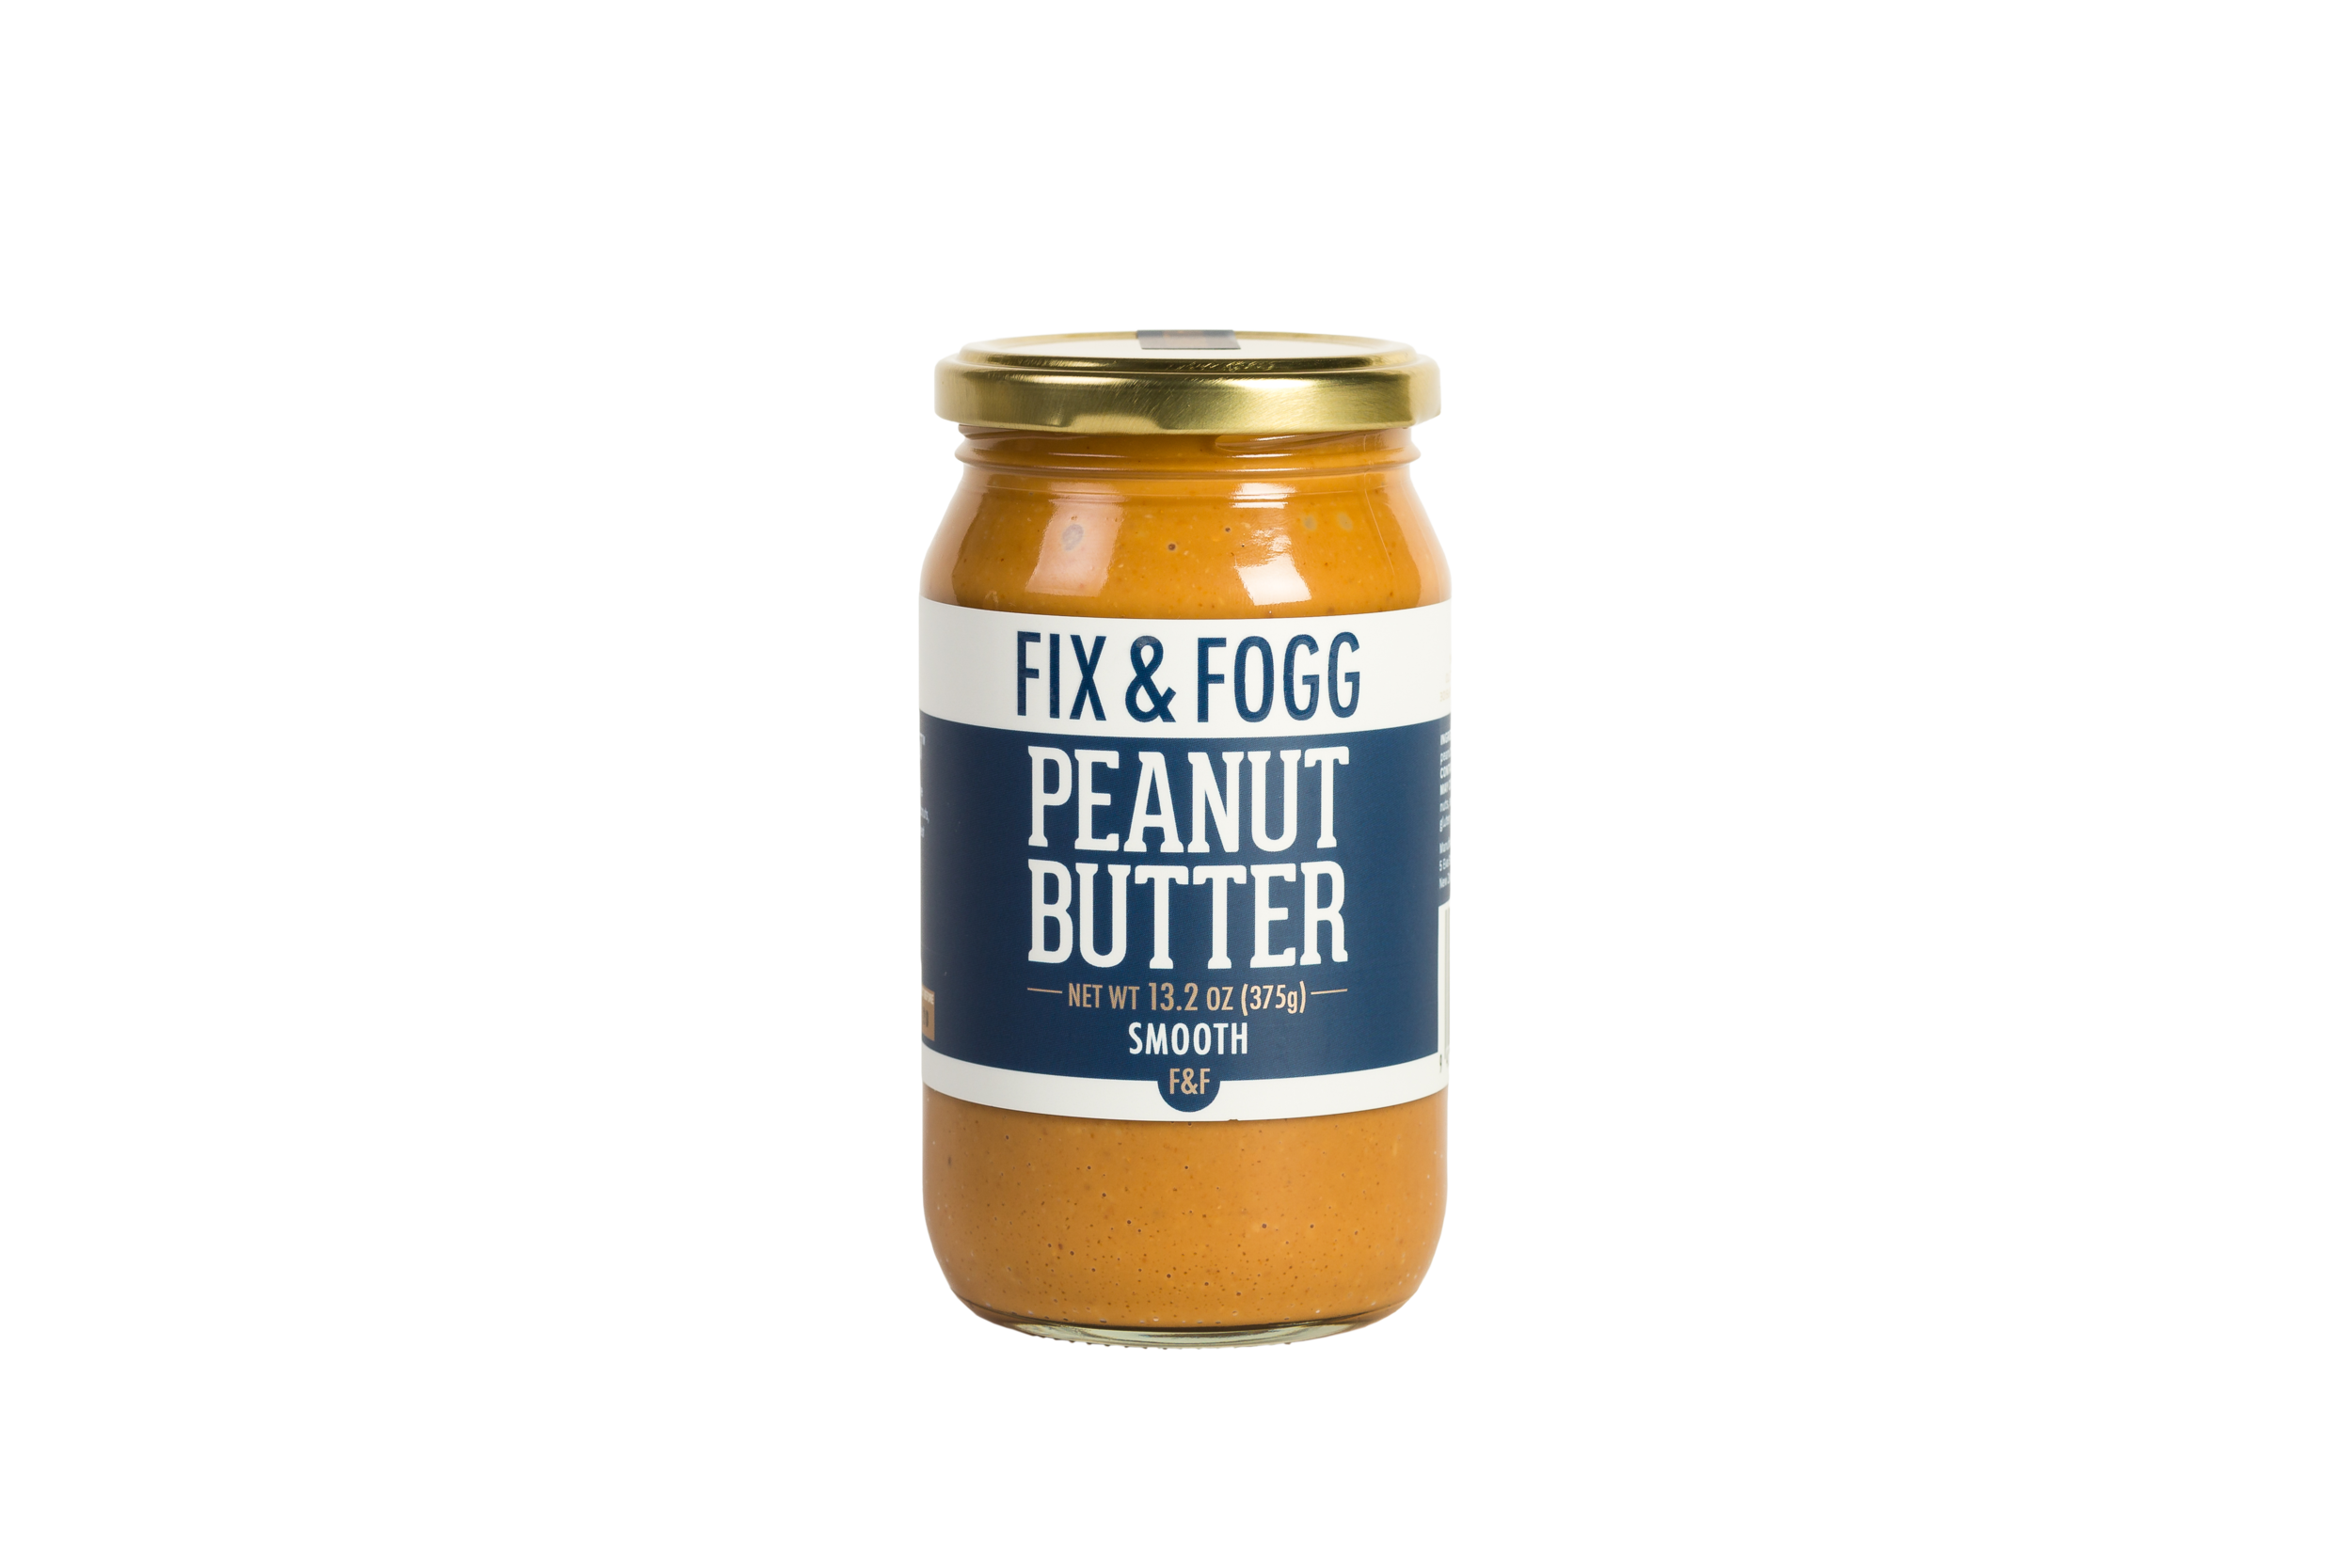 Smooth peanut butter -